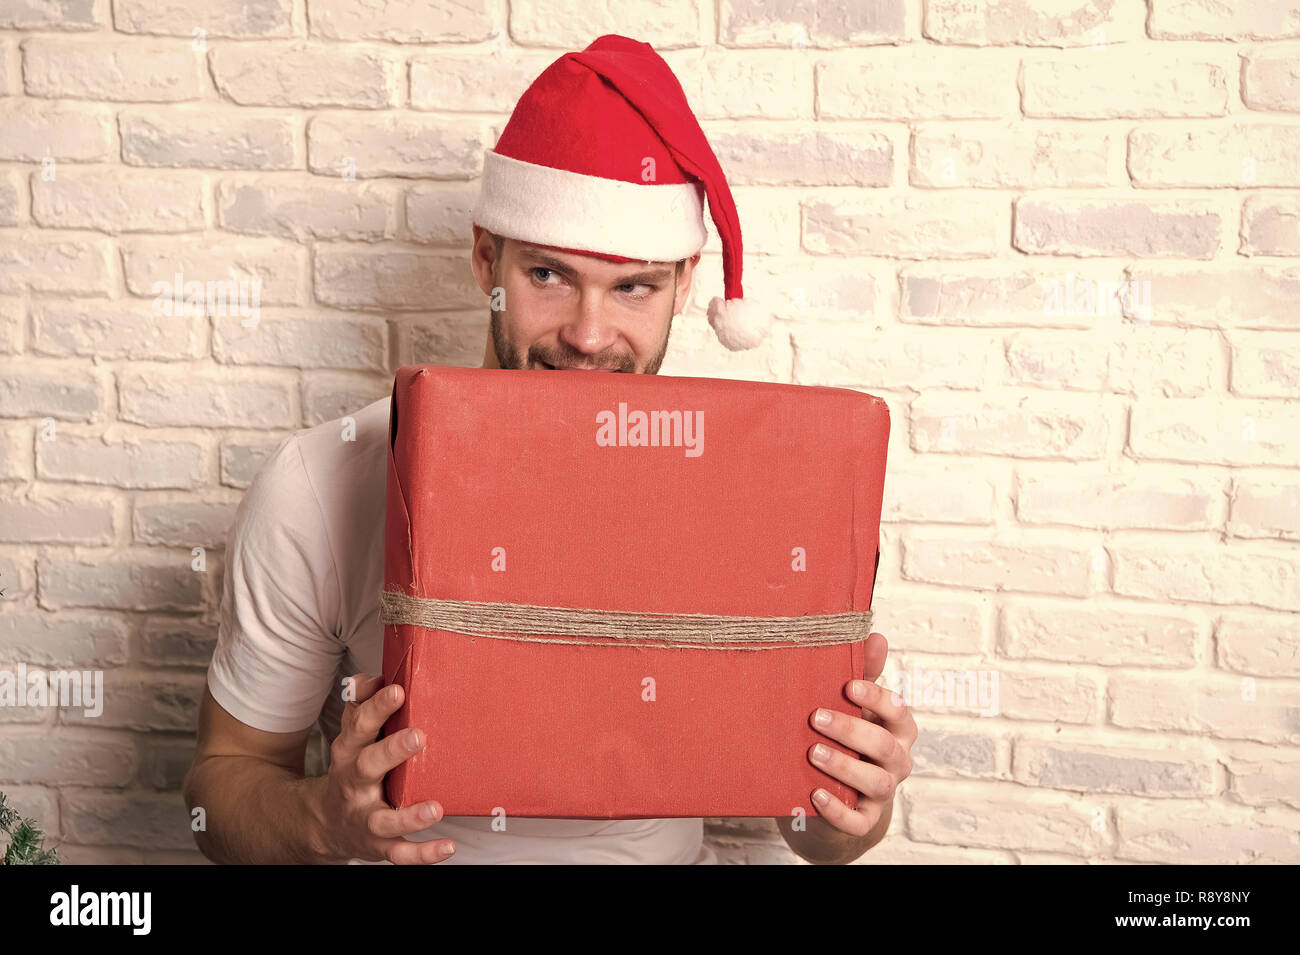 Man with cunning face in santa hat hold red wrapped christmas present box on white brick wall. Gift giving and exchange. Boxing day concept. - Stock Image